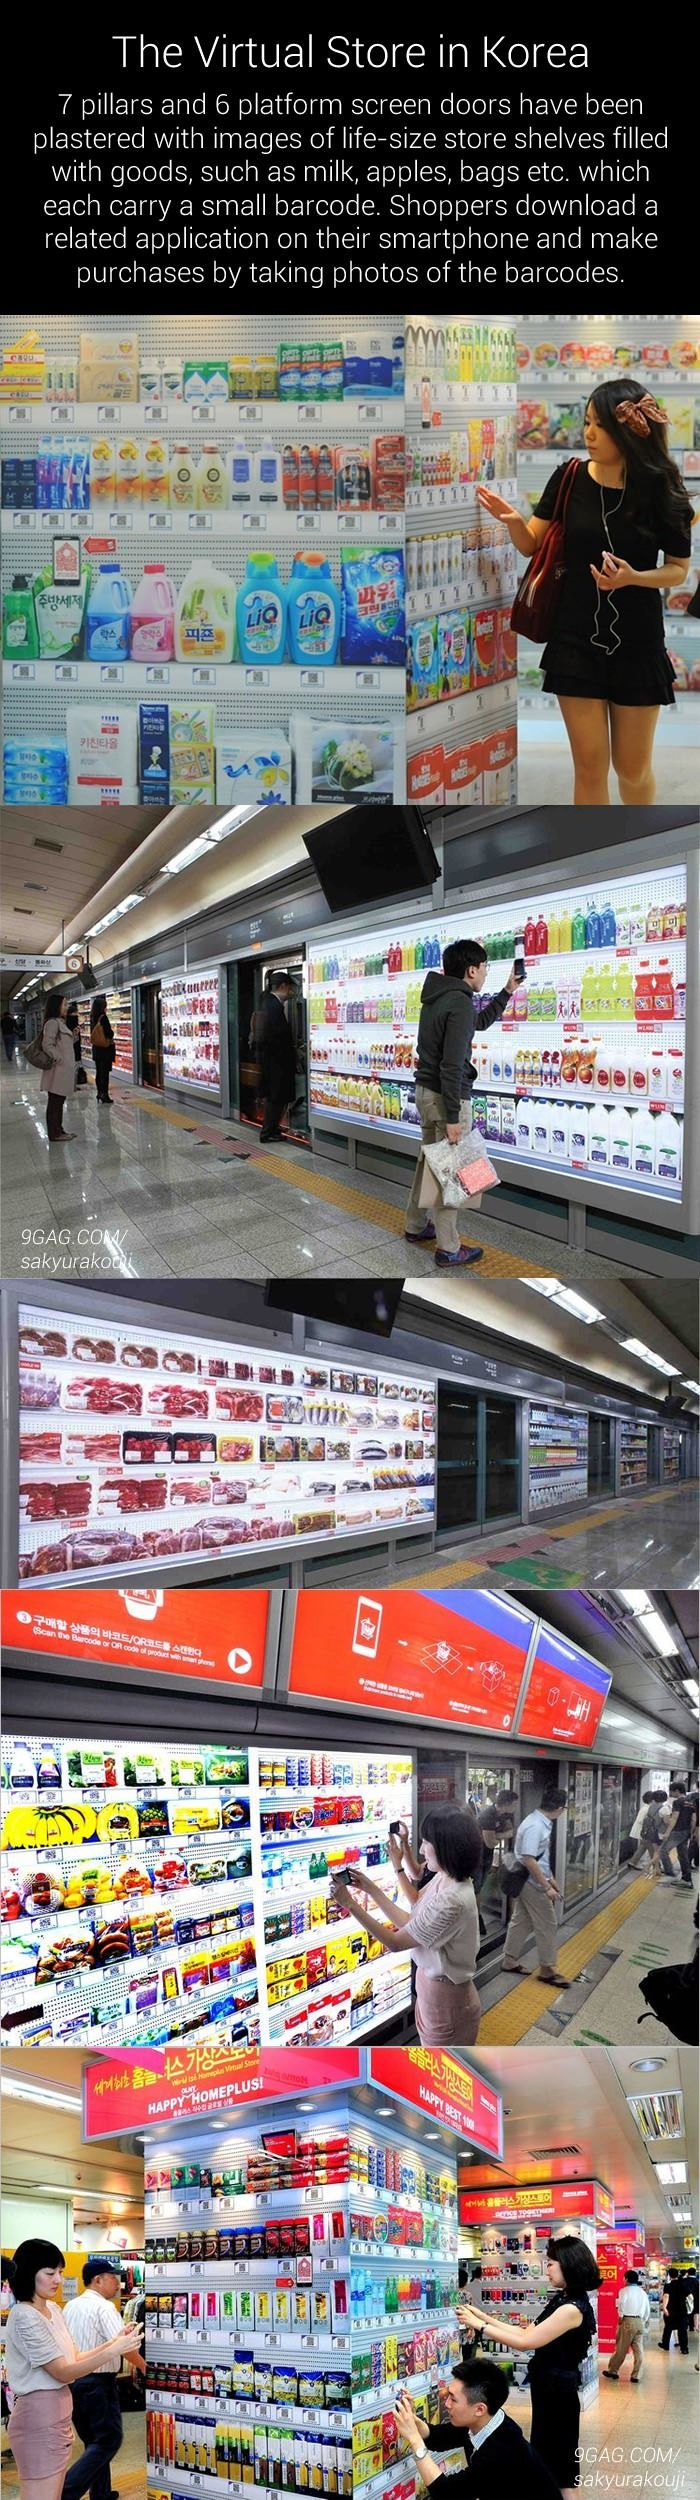 Virtual grocery store in South Korea